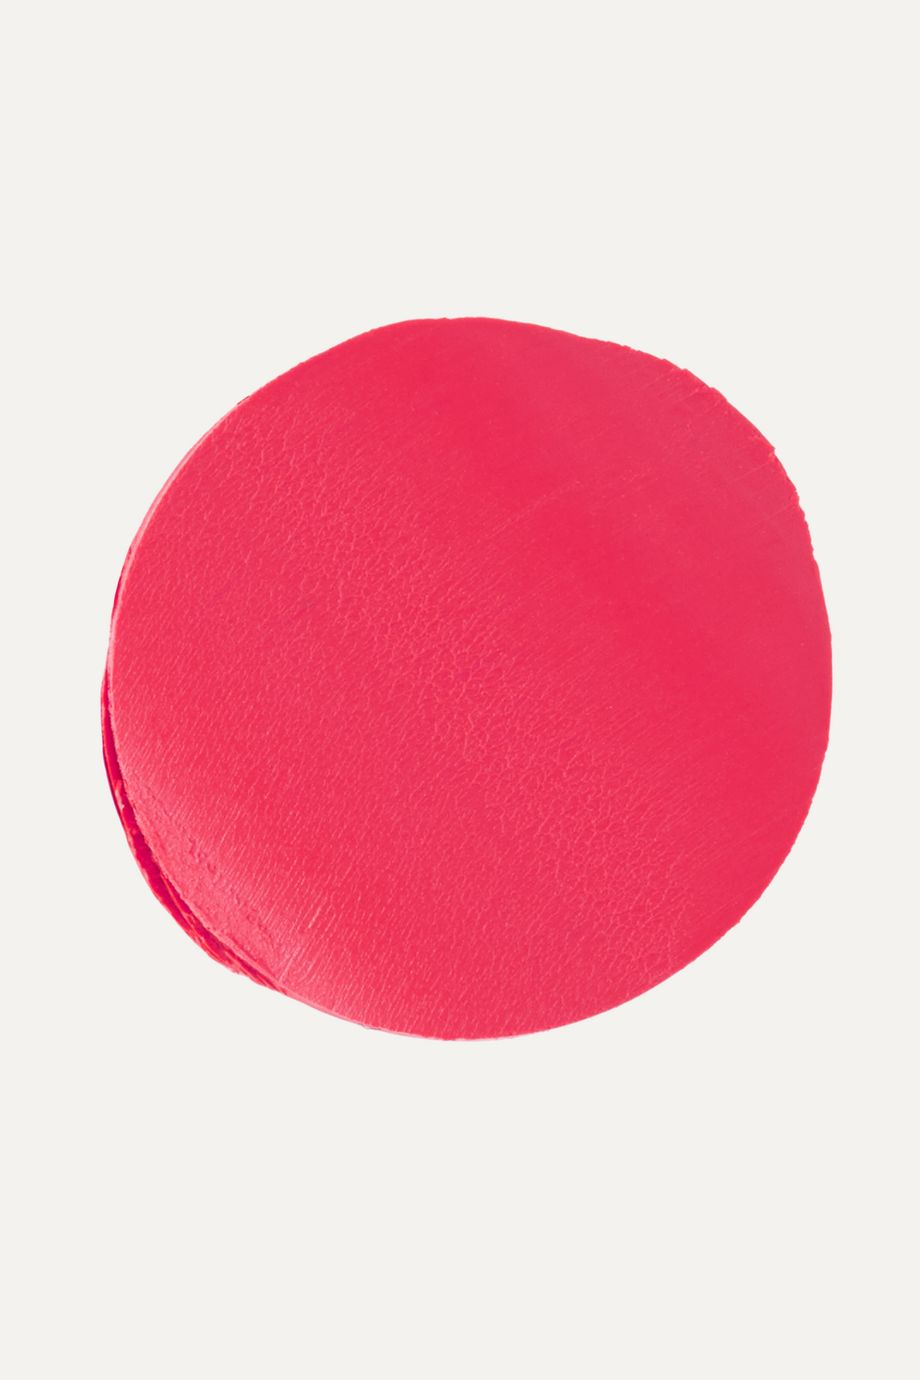 Burberry Beauty Burberry Kisses Sheer - Bright Pink No.233